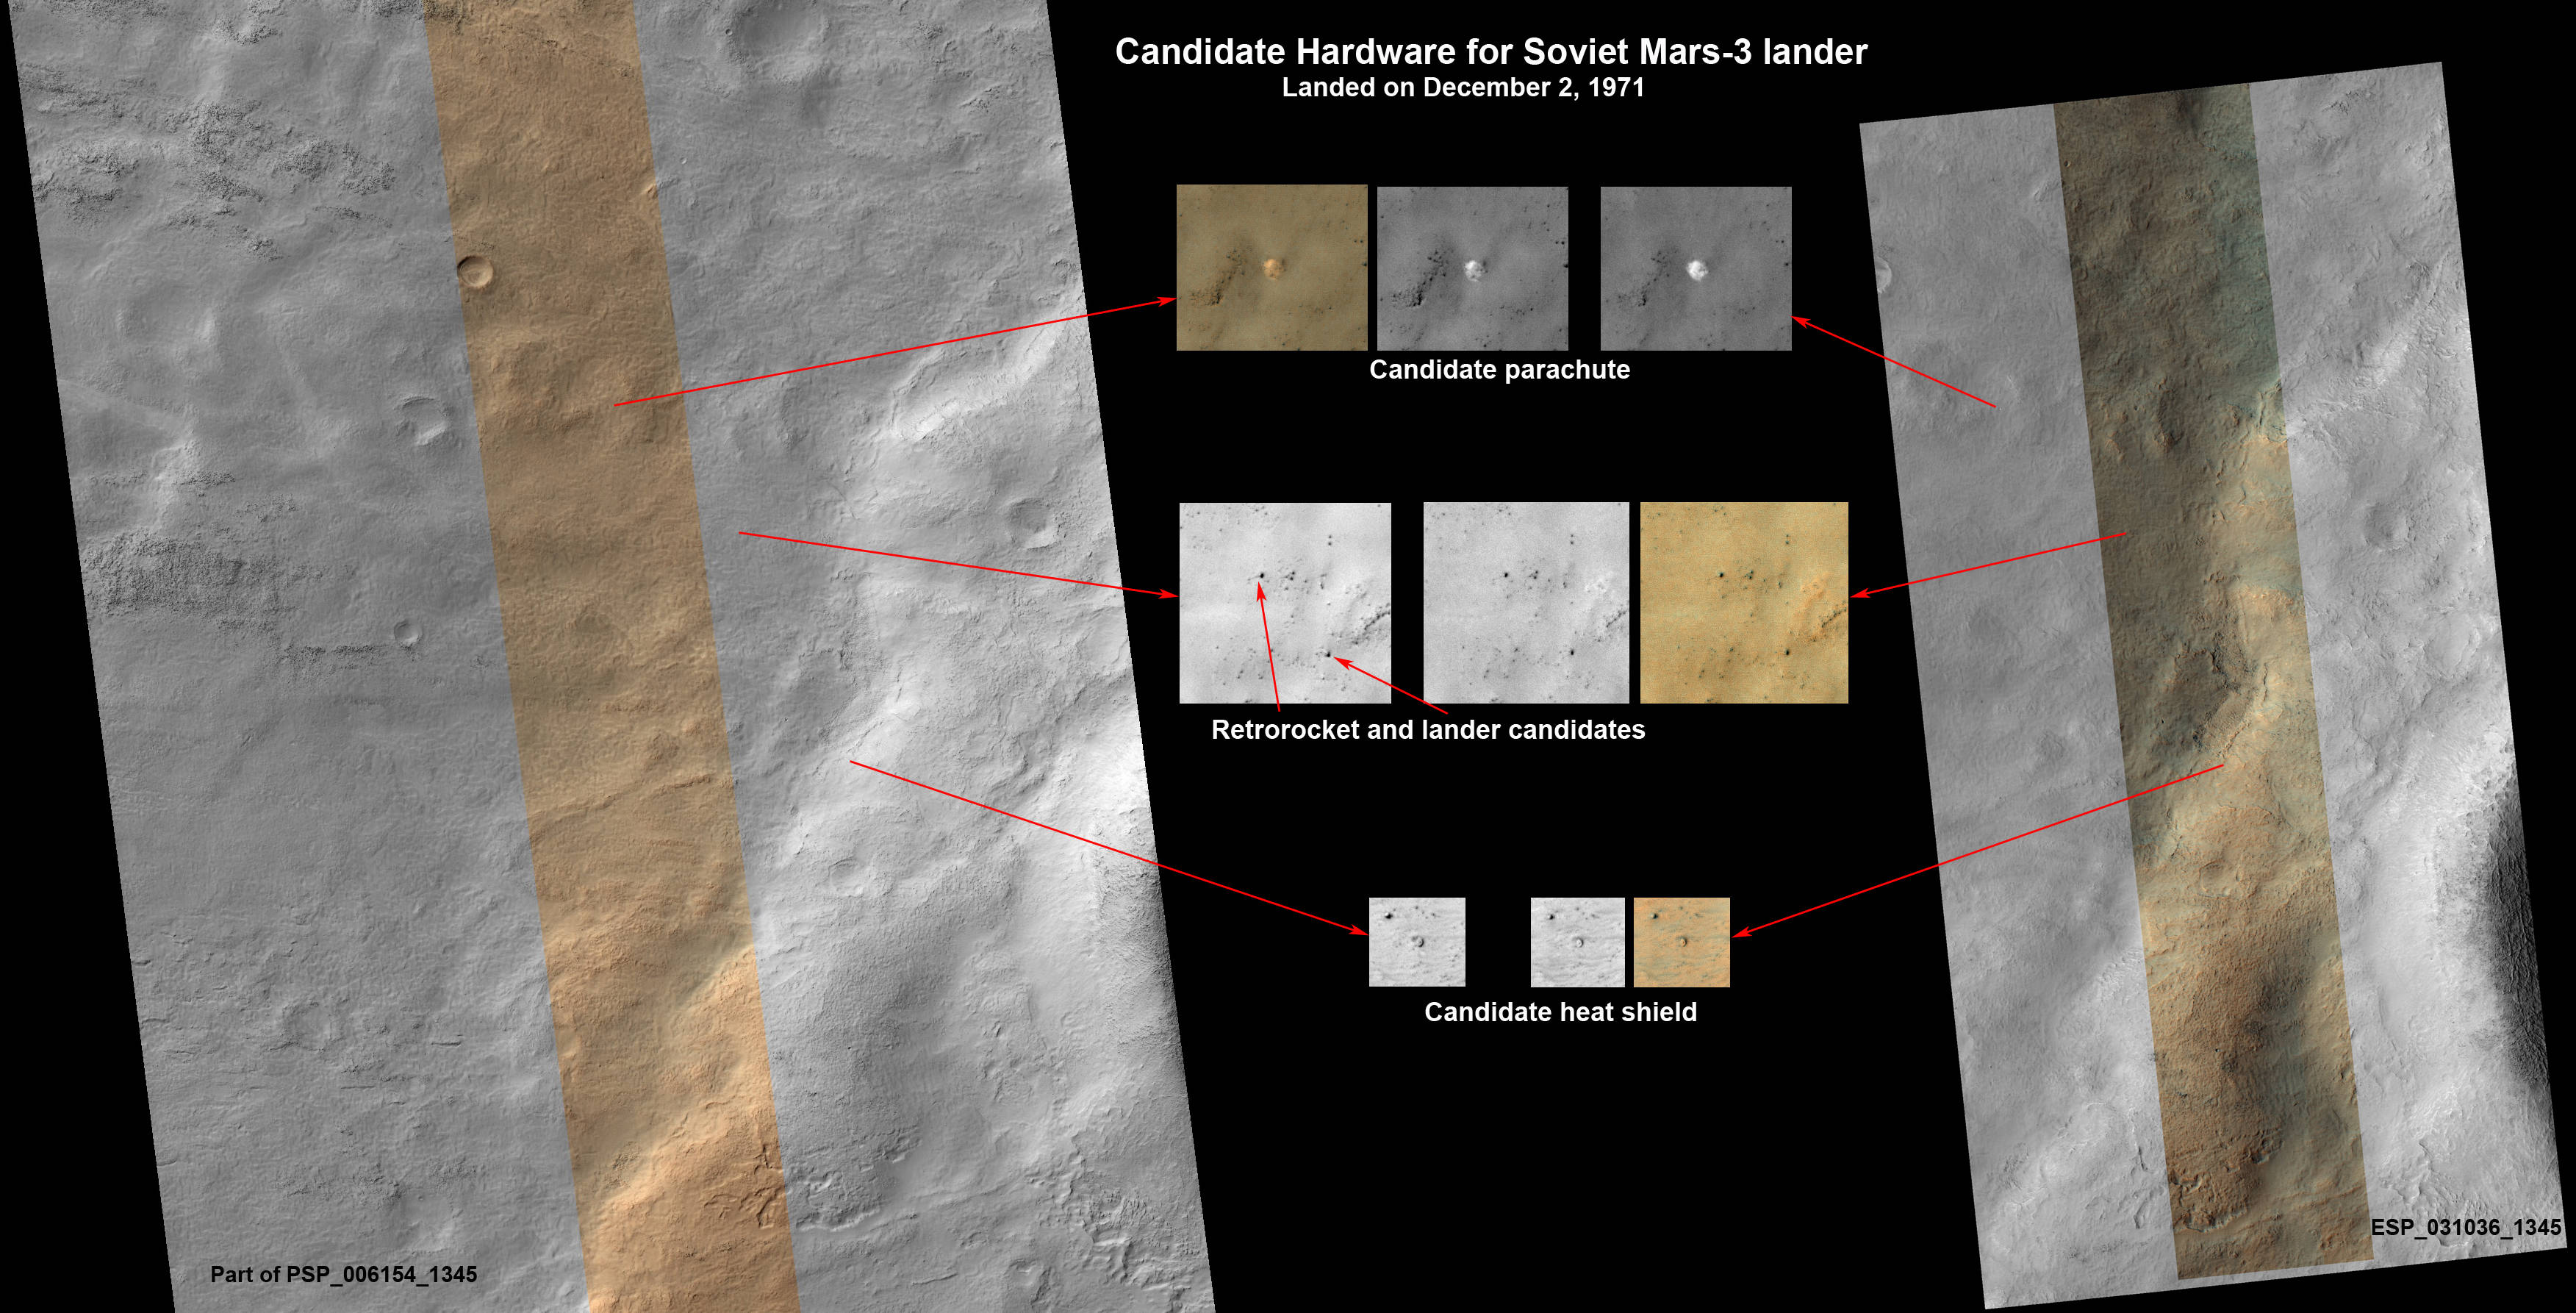 MRO image of Mars 3